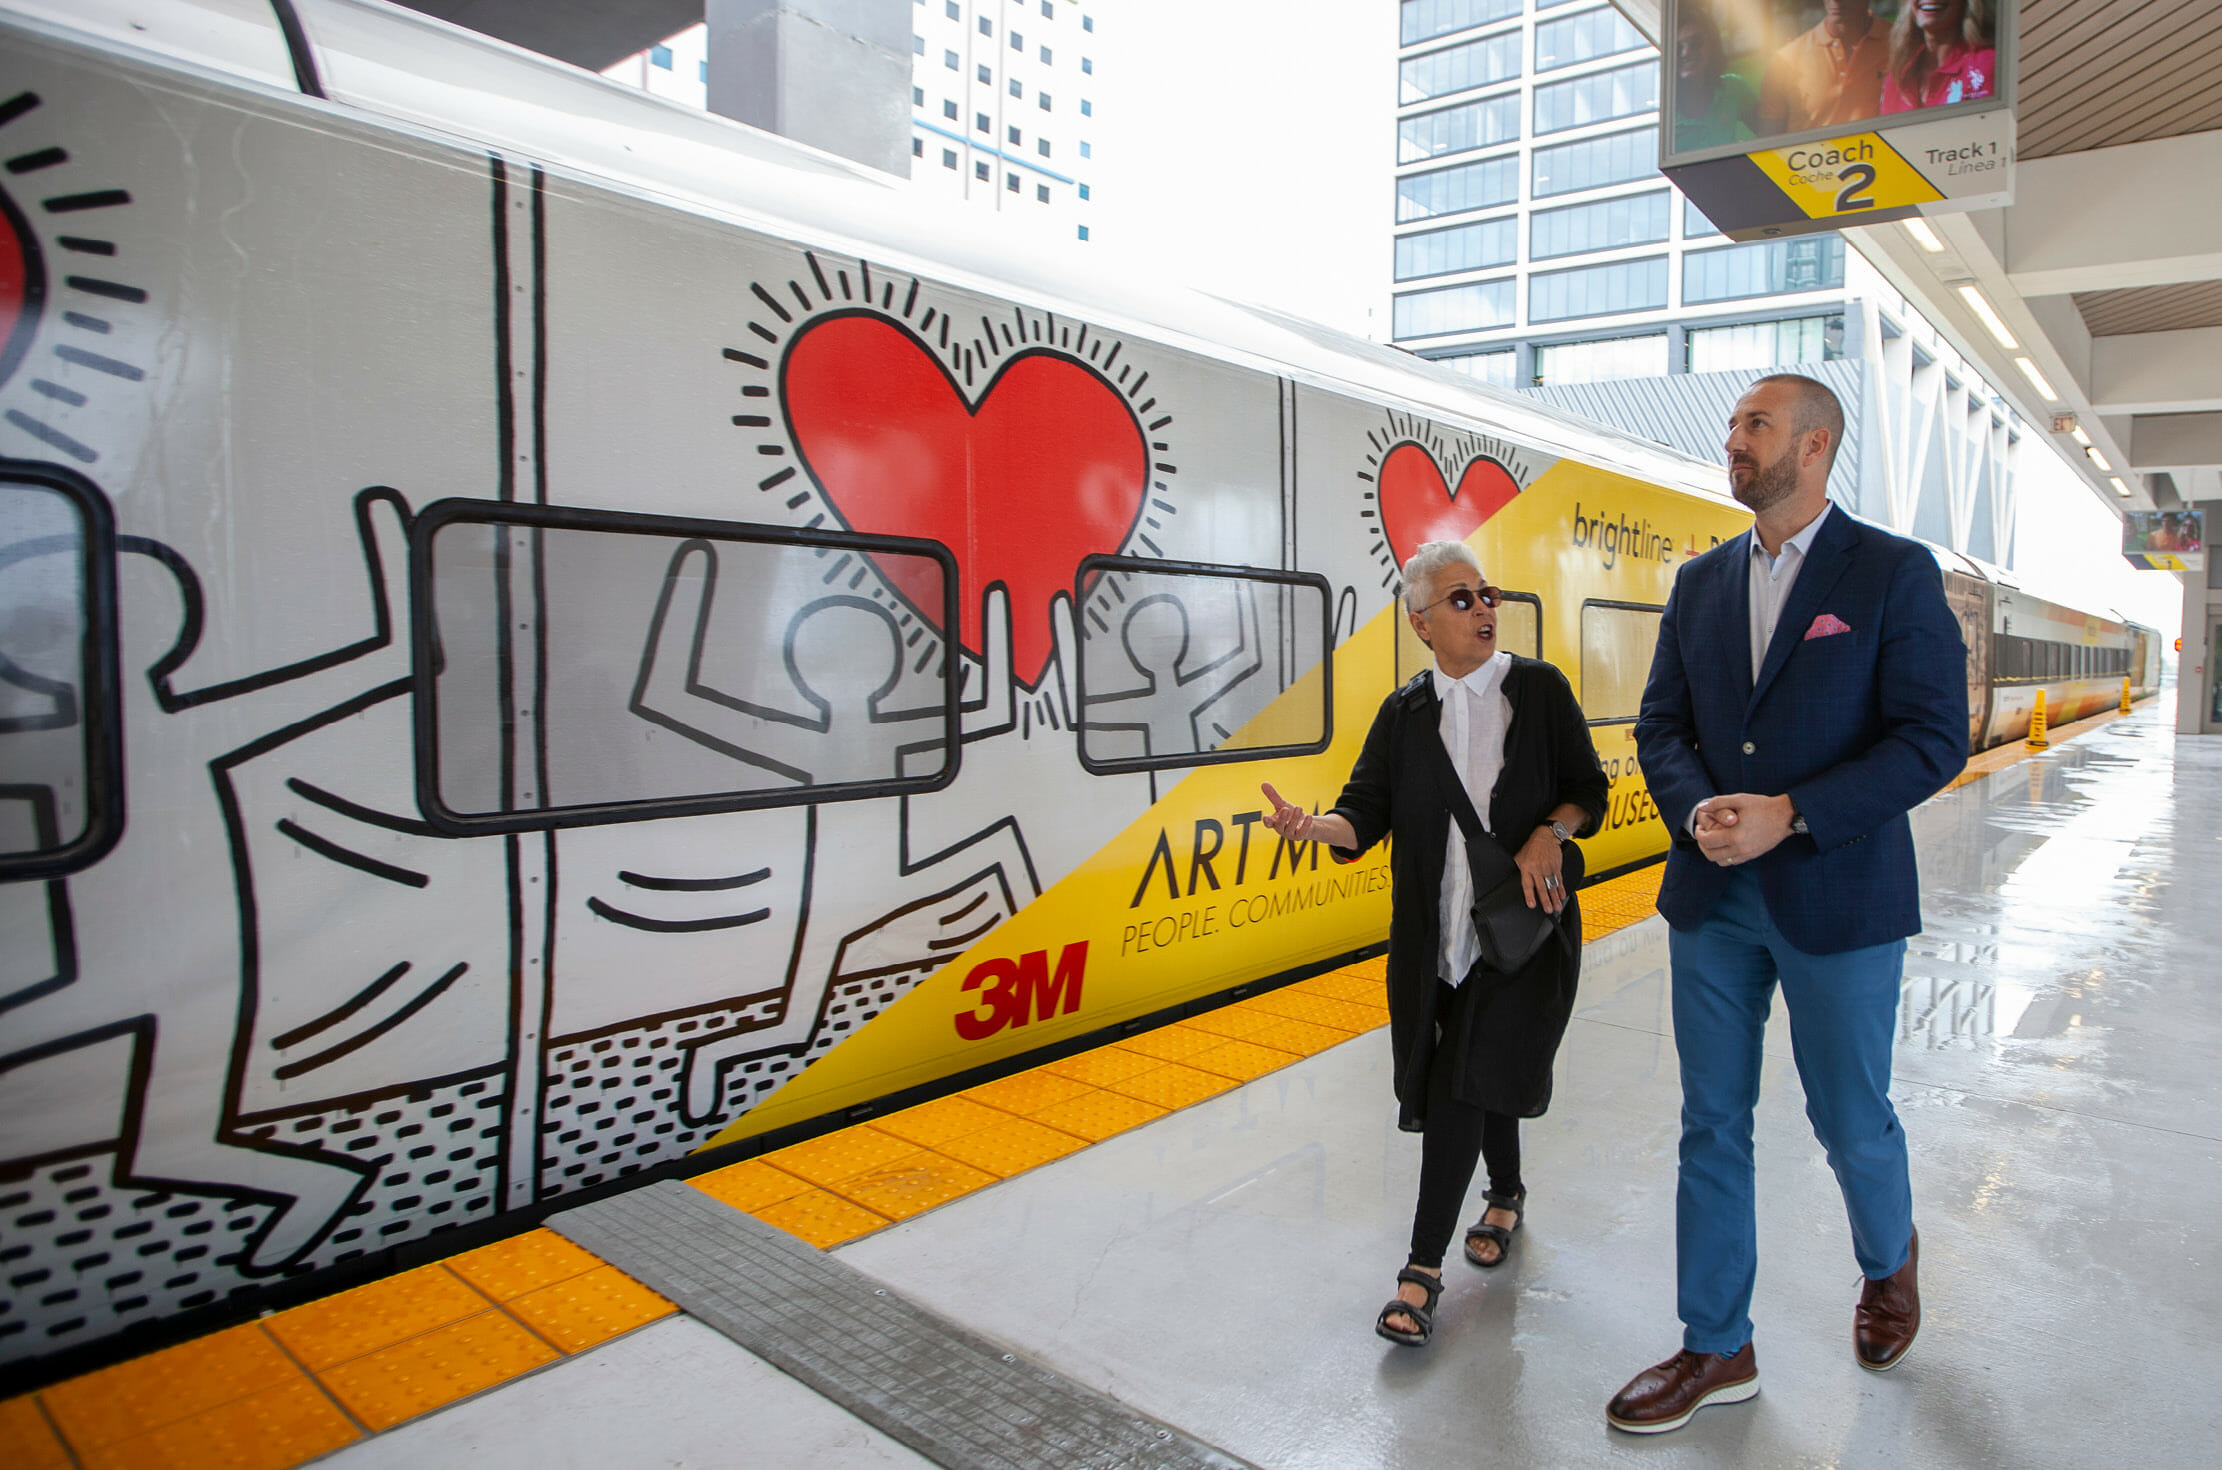 Images from Keith Haring's Iconic Work in Rubell Museum's Collection